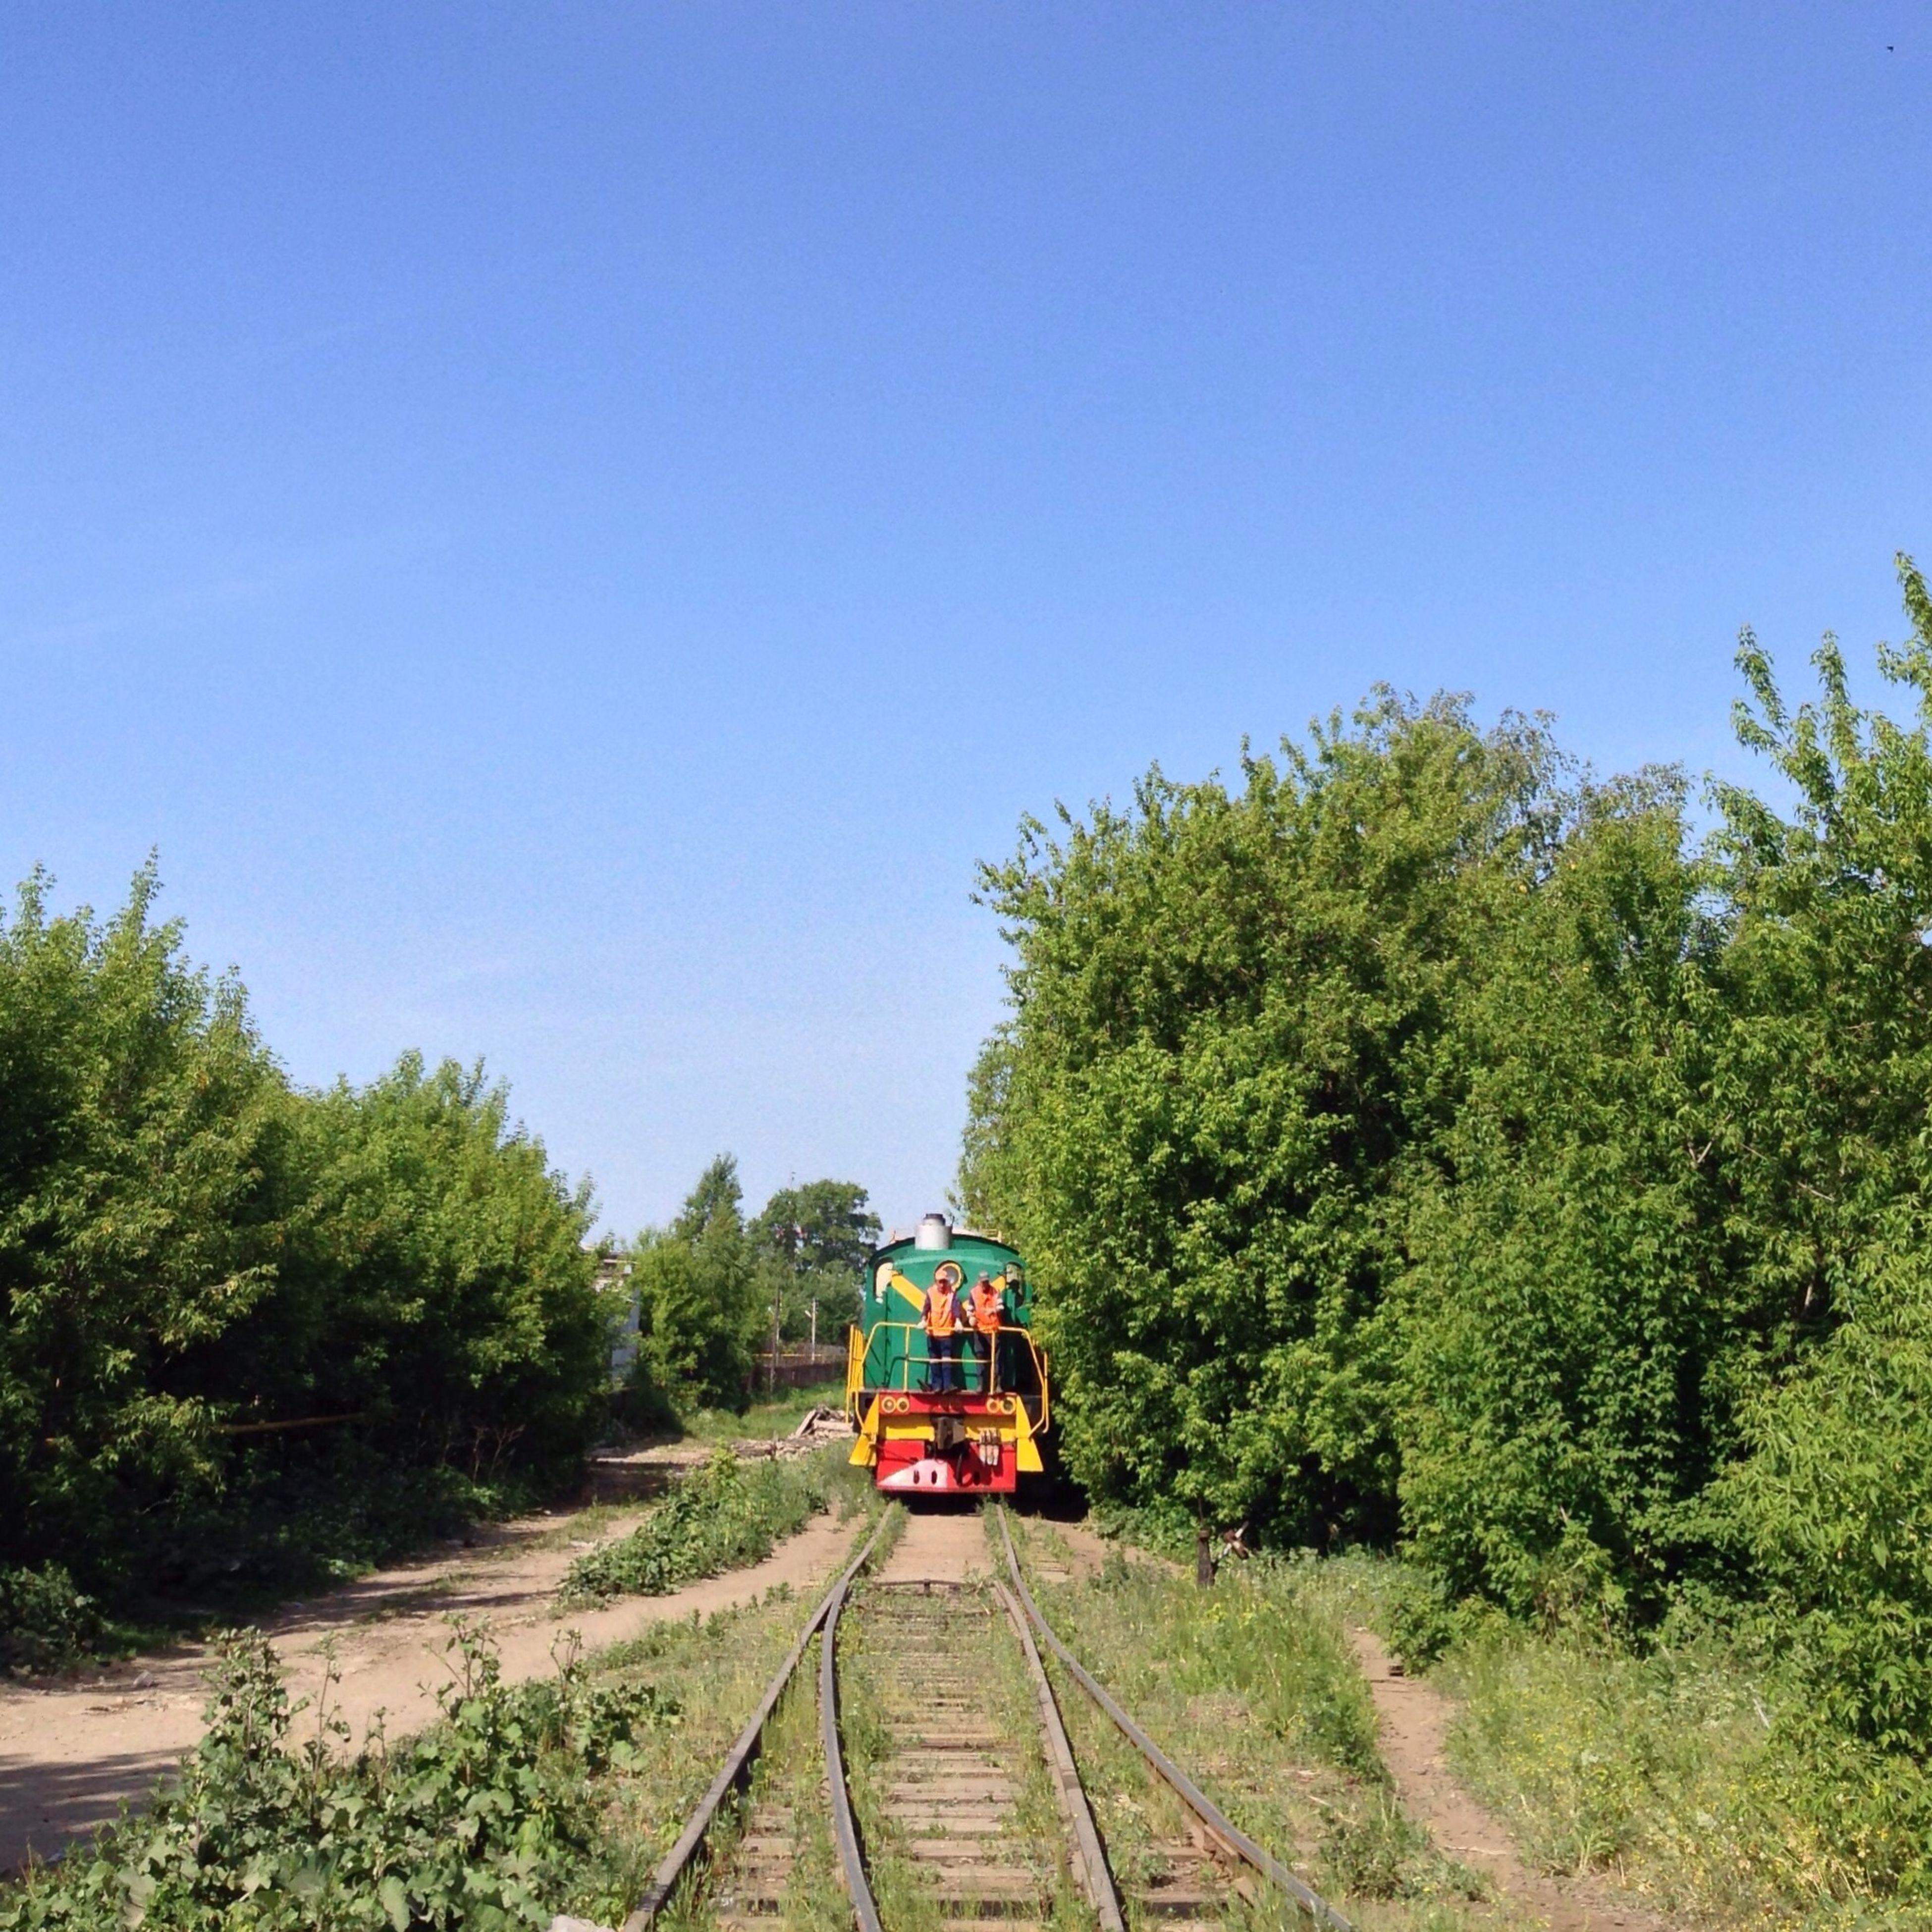 transportation, clear sky, tree, railroad track, mode of transport, land vehicle, rail transportation, the way forward, blue, green color, copy space, growth, day, public transportation, diminishing perspective, travel, road, outdoors, nature, car